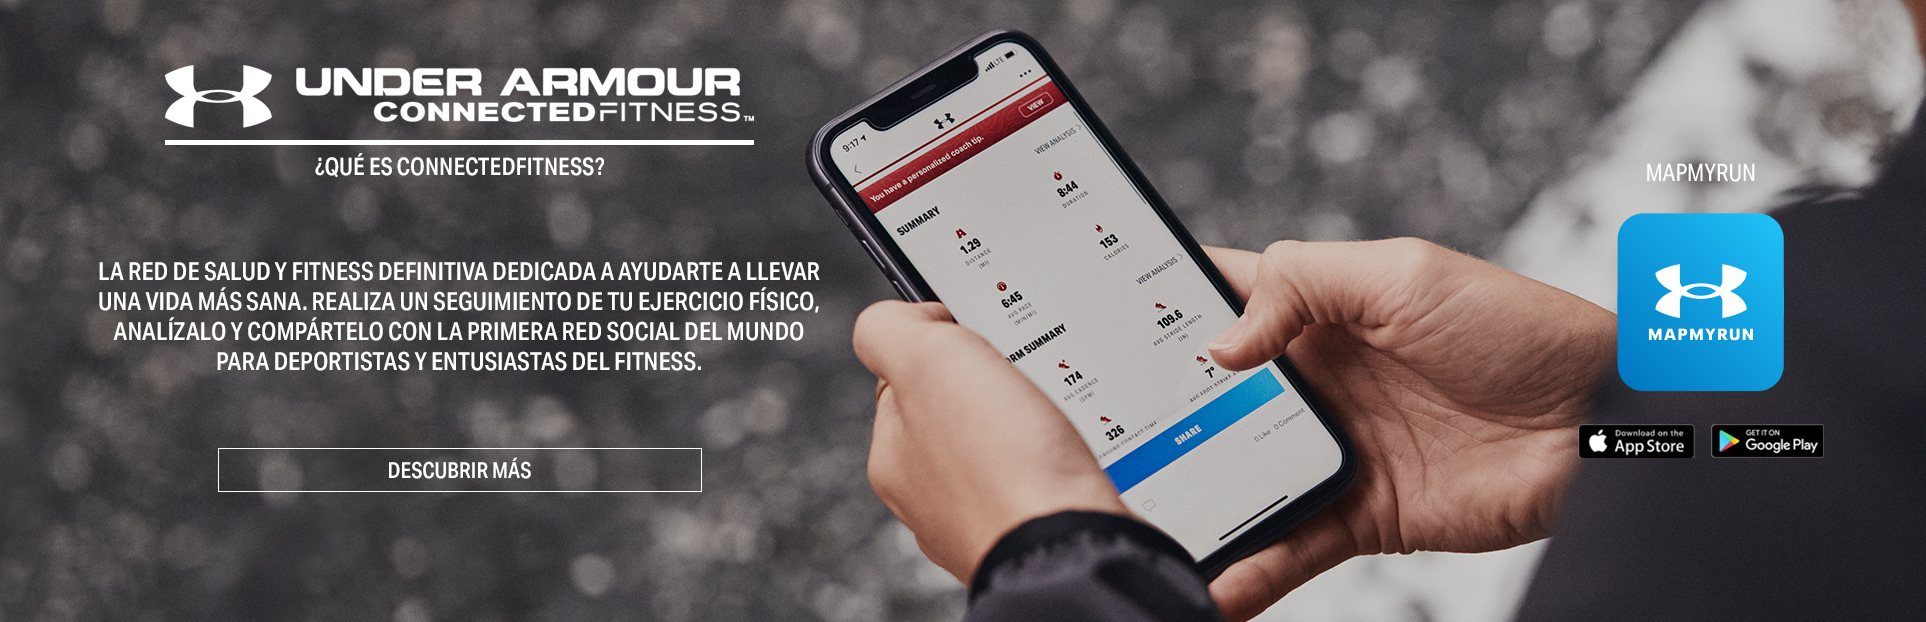 Under Armour Connected Fitness. what is Connective Fitness? the definite health and fitness network dedicated to helping you lead a healthier life. Track, analyse, and share your fitness activity with the world's first social network for athletes and fitness enthusiasts.